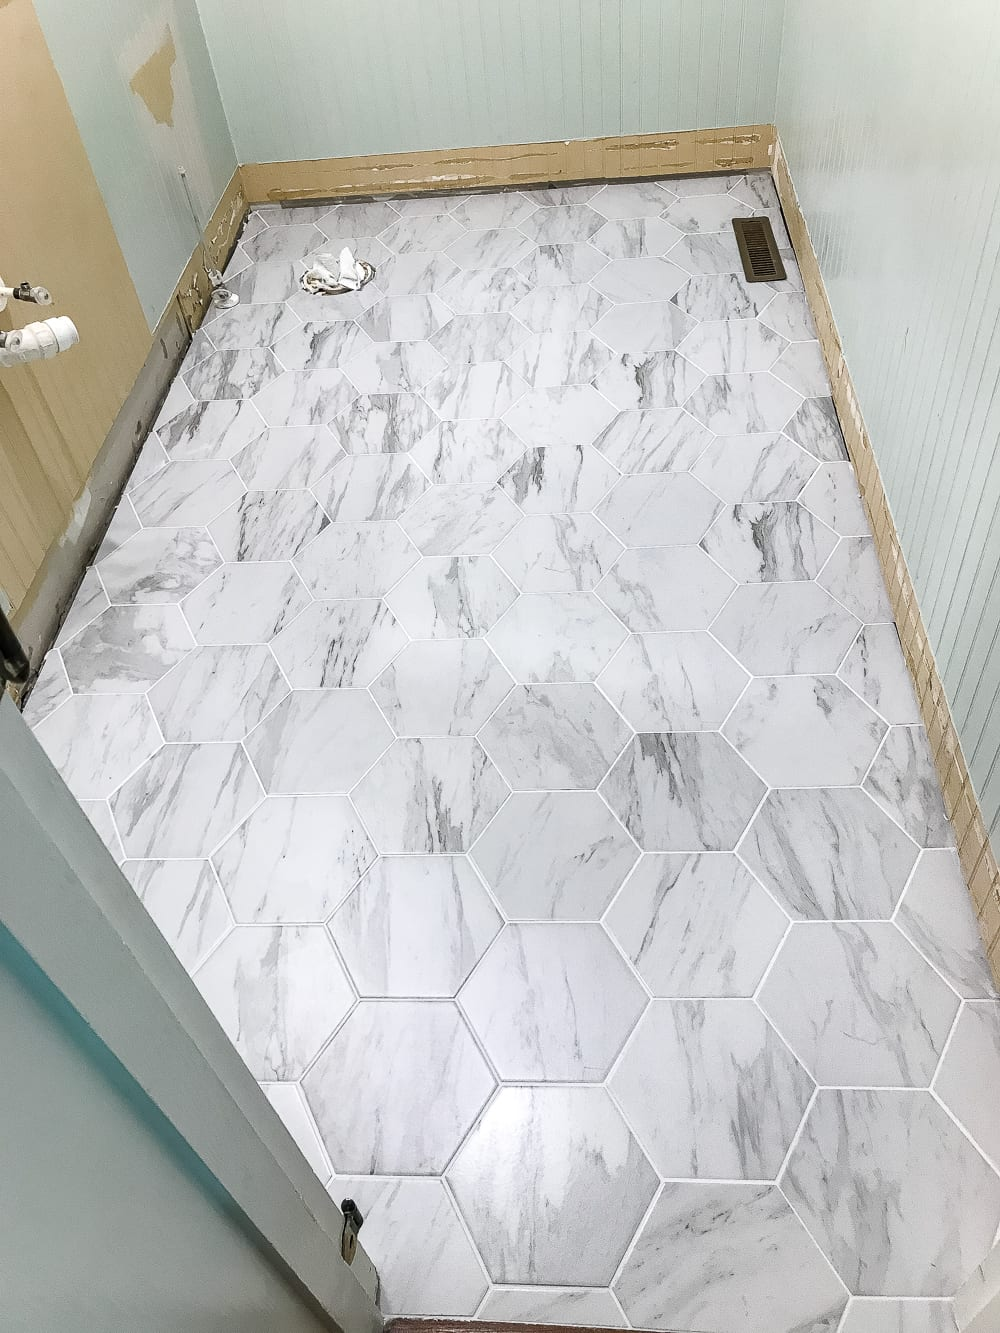 Powder room makeover faux marble tile floor blesser house the best faux marble tile blesserhouse a dated powder room floor gets dailygadgetfo Gallery